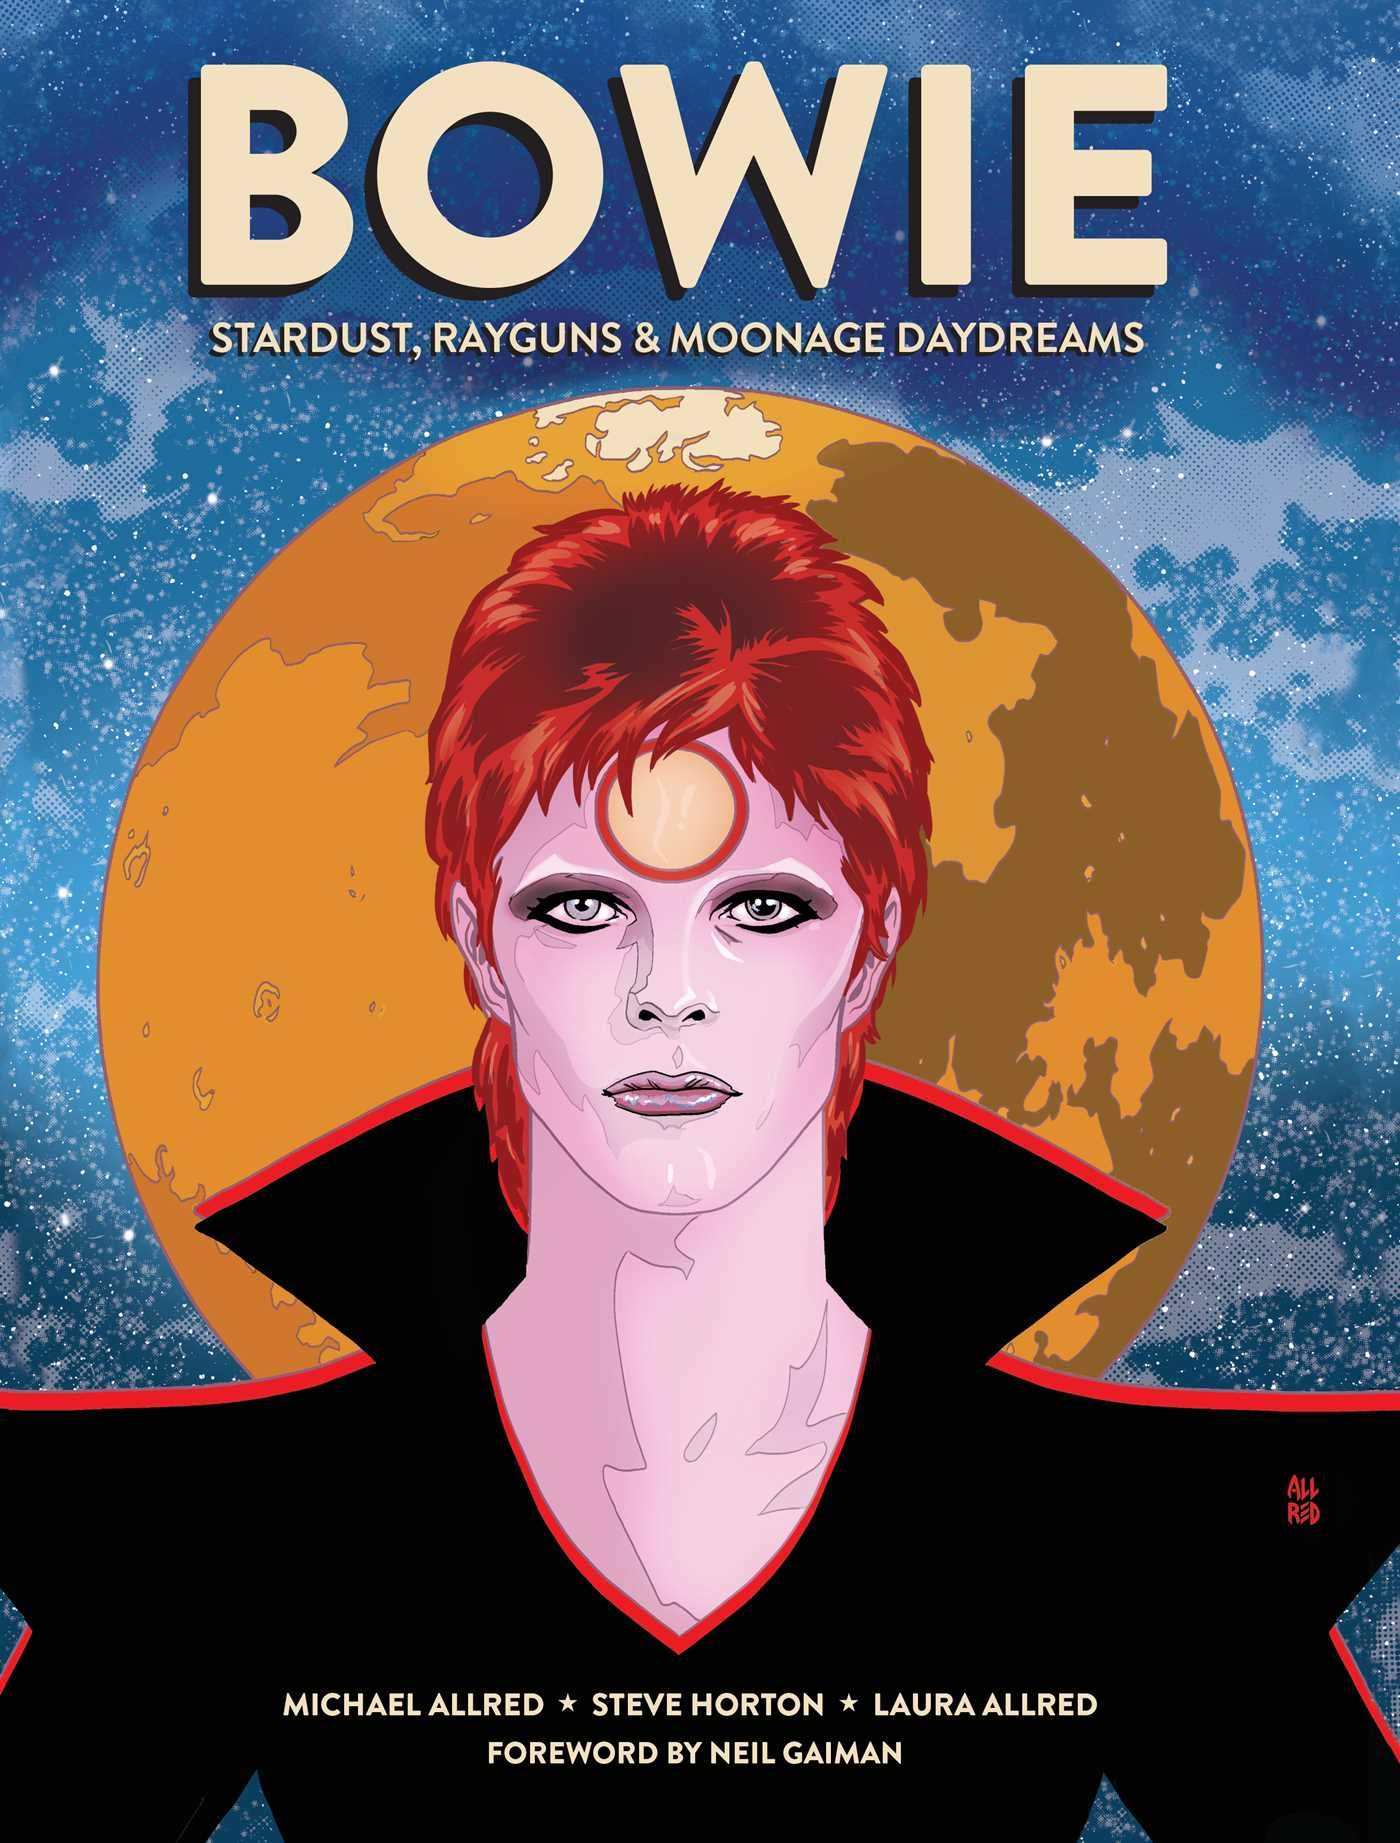 BOWIE: Stardust, Rayguns, & Moonage Daydreams (OGN biography of Ziggy  Stardust, gift for Bowie fan, gift for music lover, Neil Gaiman, Michael  Allred): Allred, Michael, Horton, Steve, Allred, Laura, Gaiman, Neil:  9781683834489: